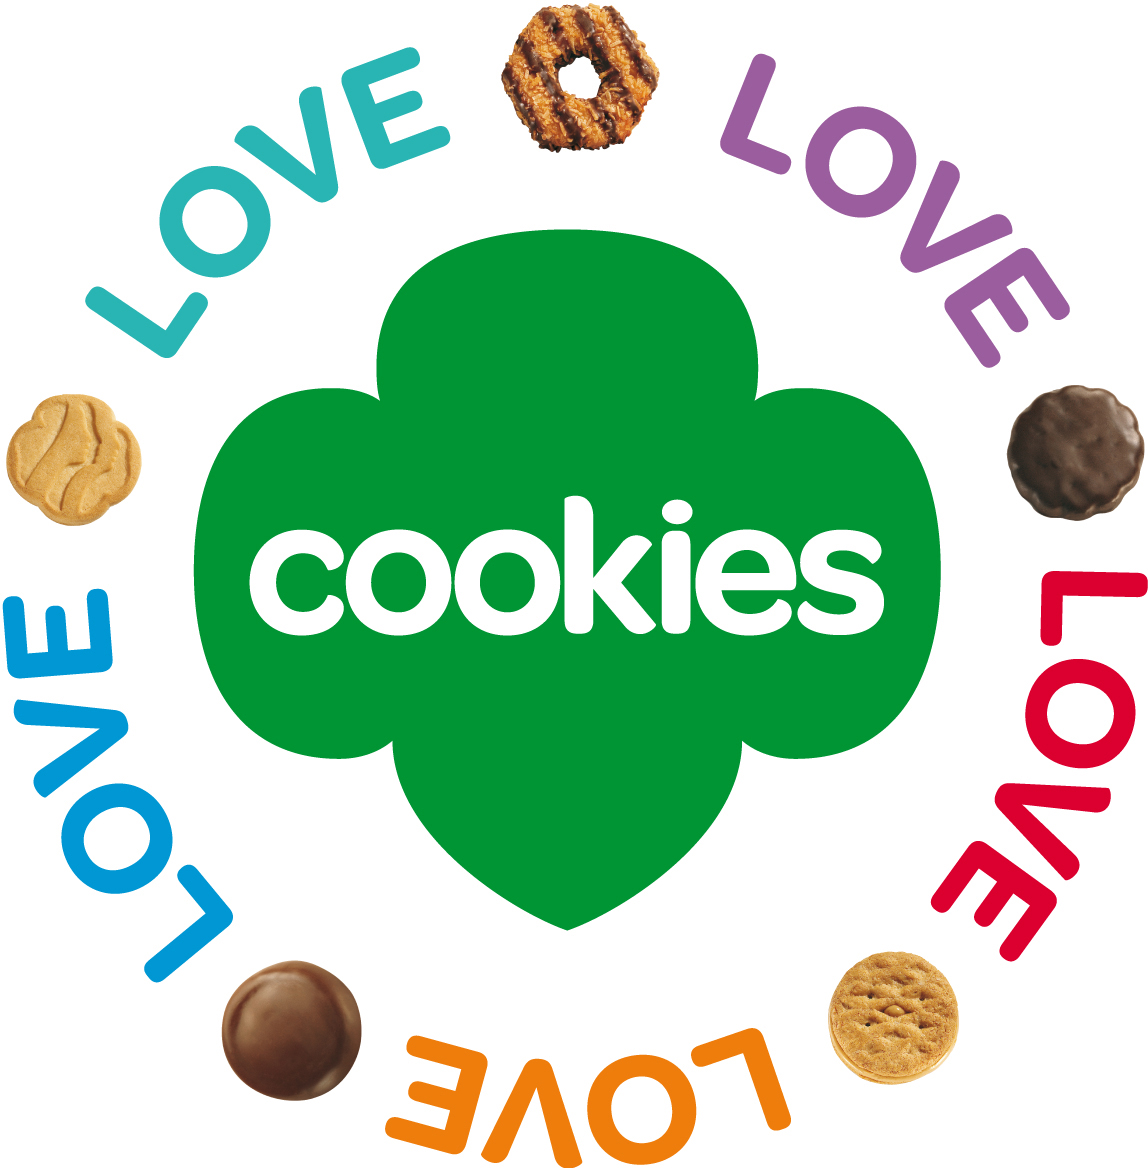 The original girl scout cookie recipe